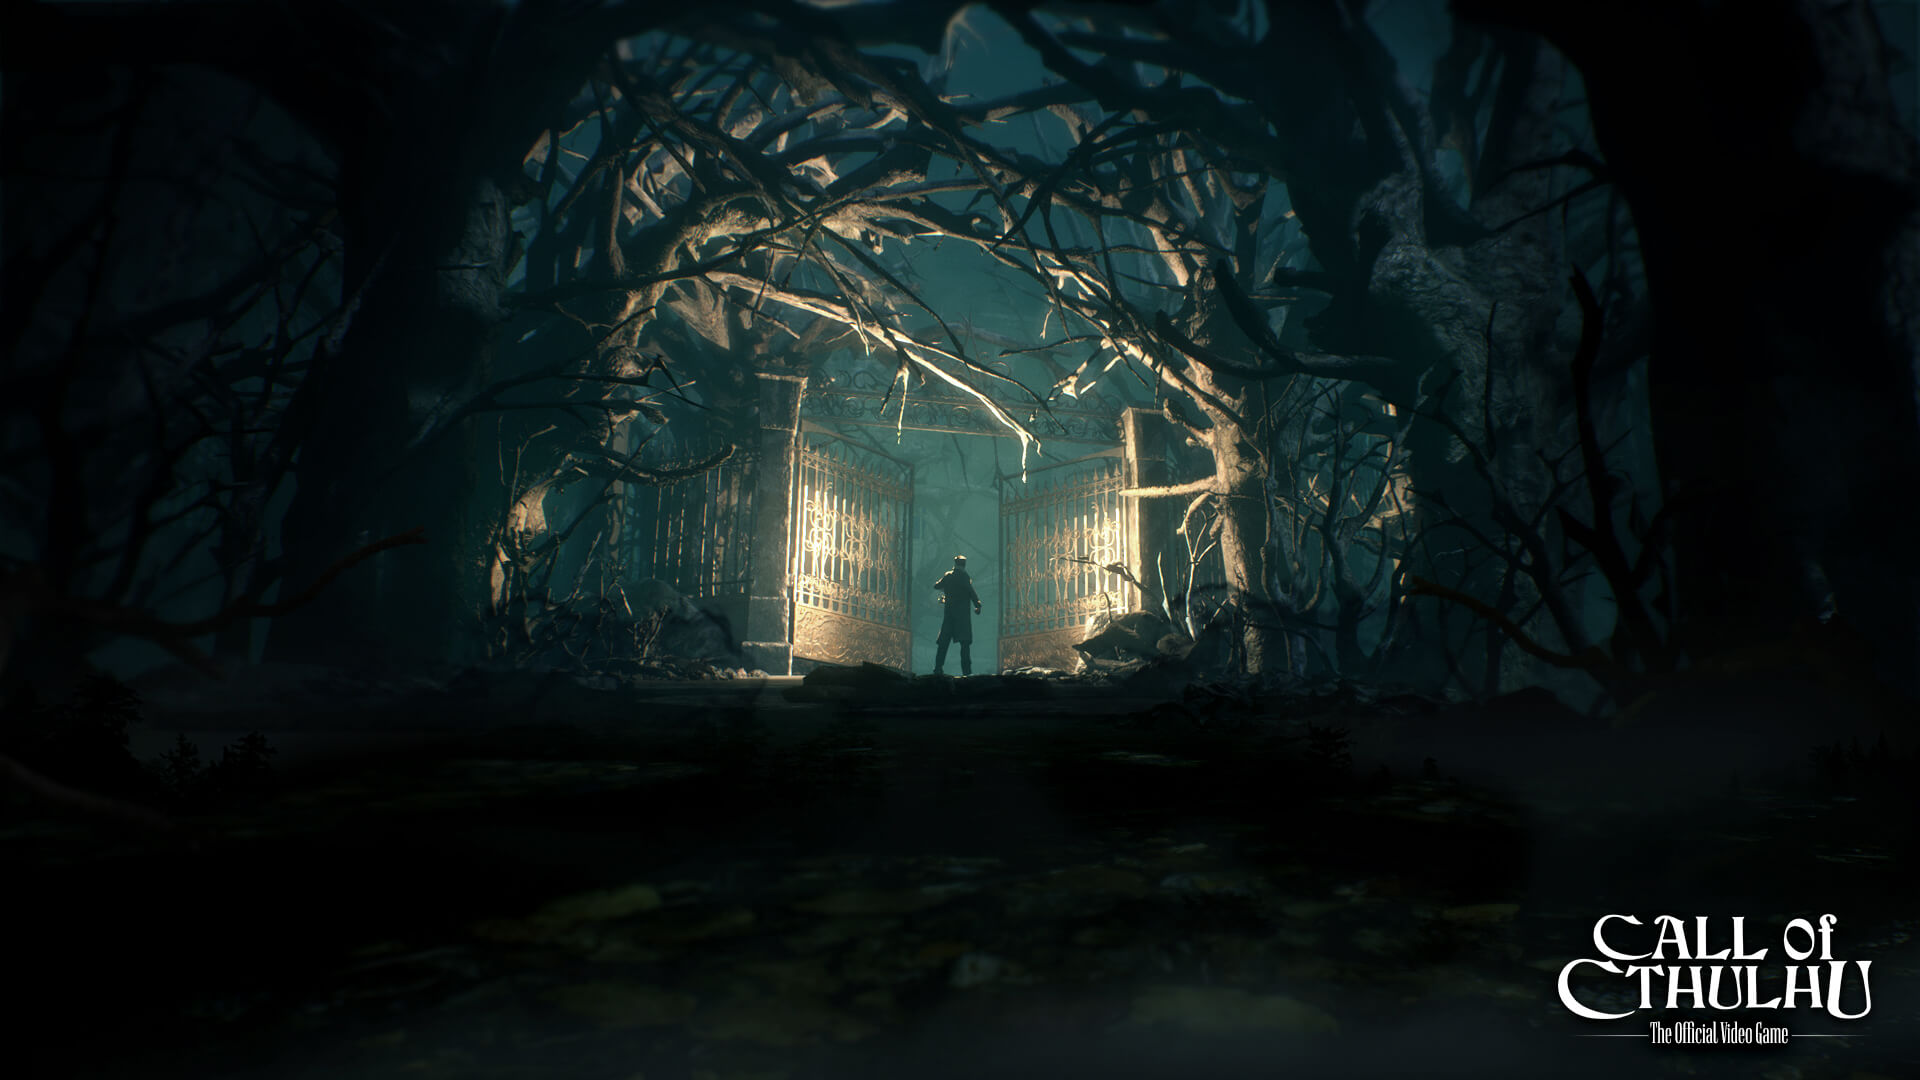 Review - Call of Cthulhu (PC)